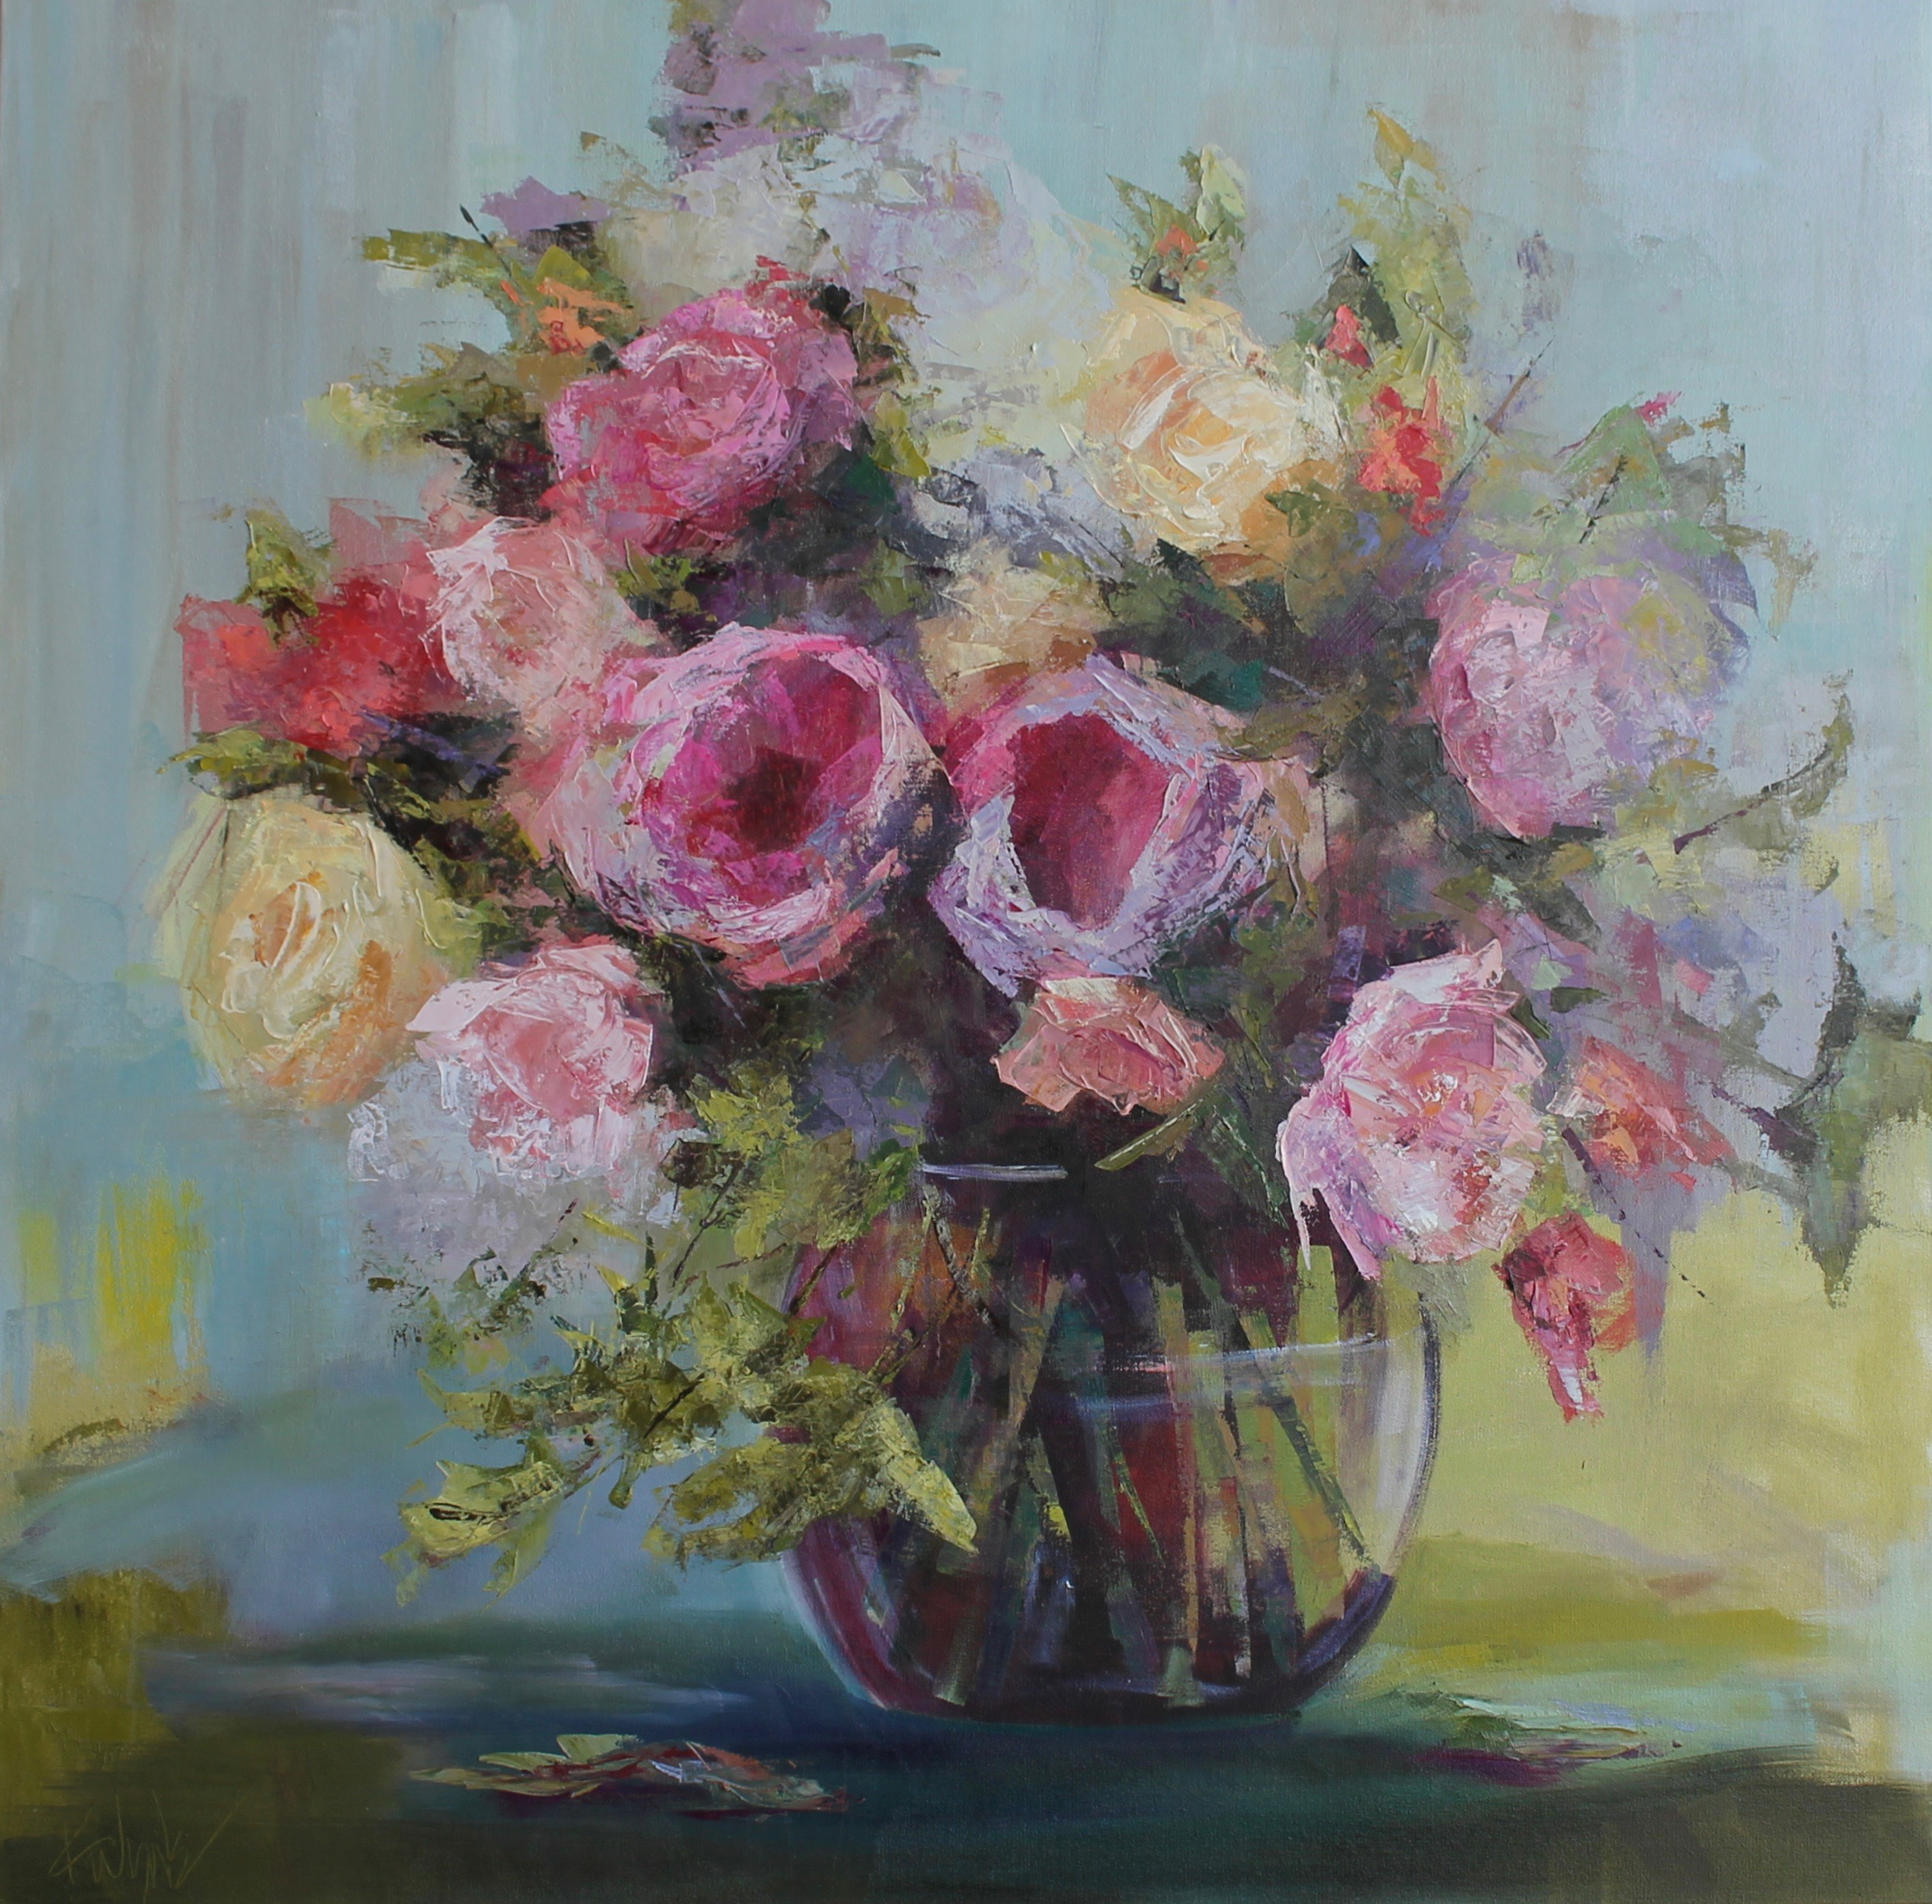 Roses Galore by Kay Wyne